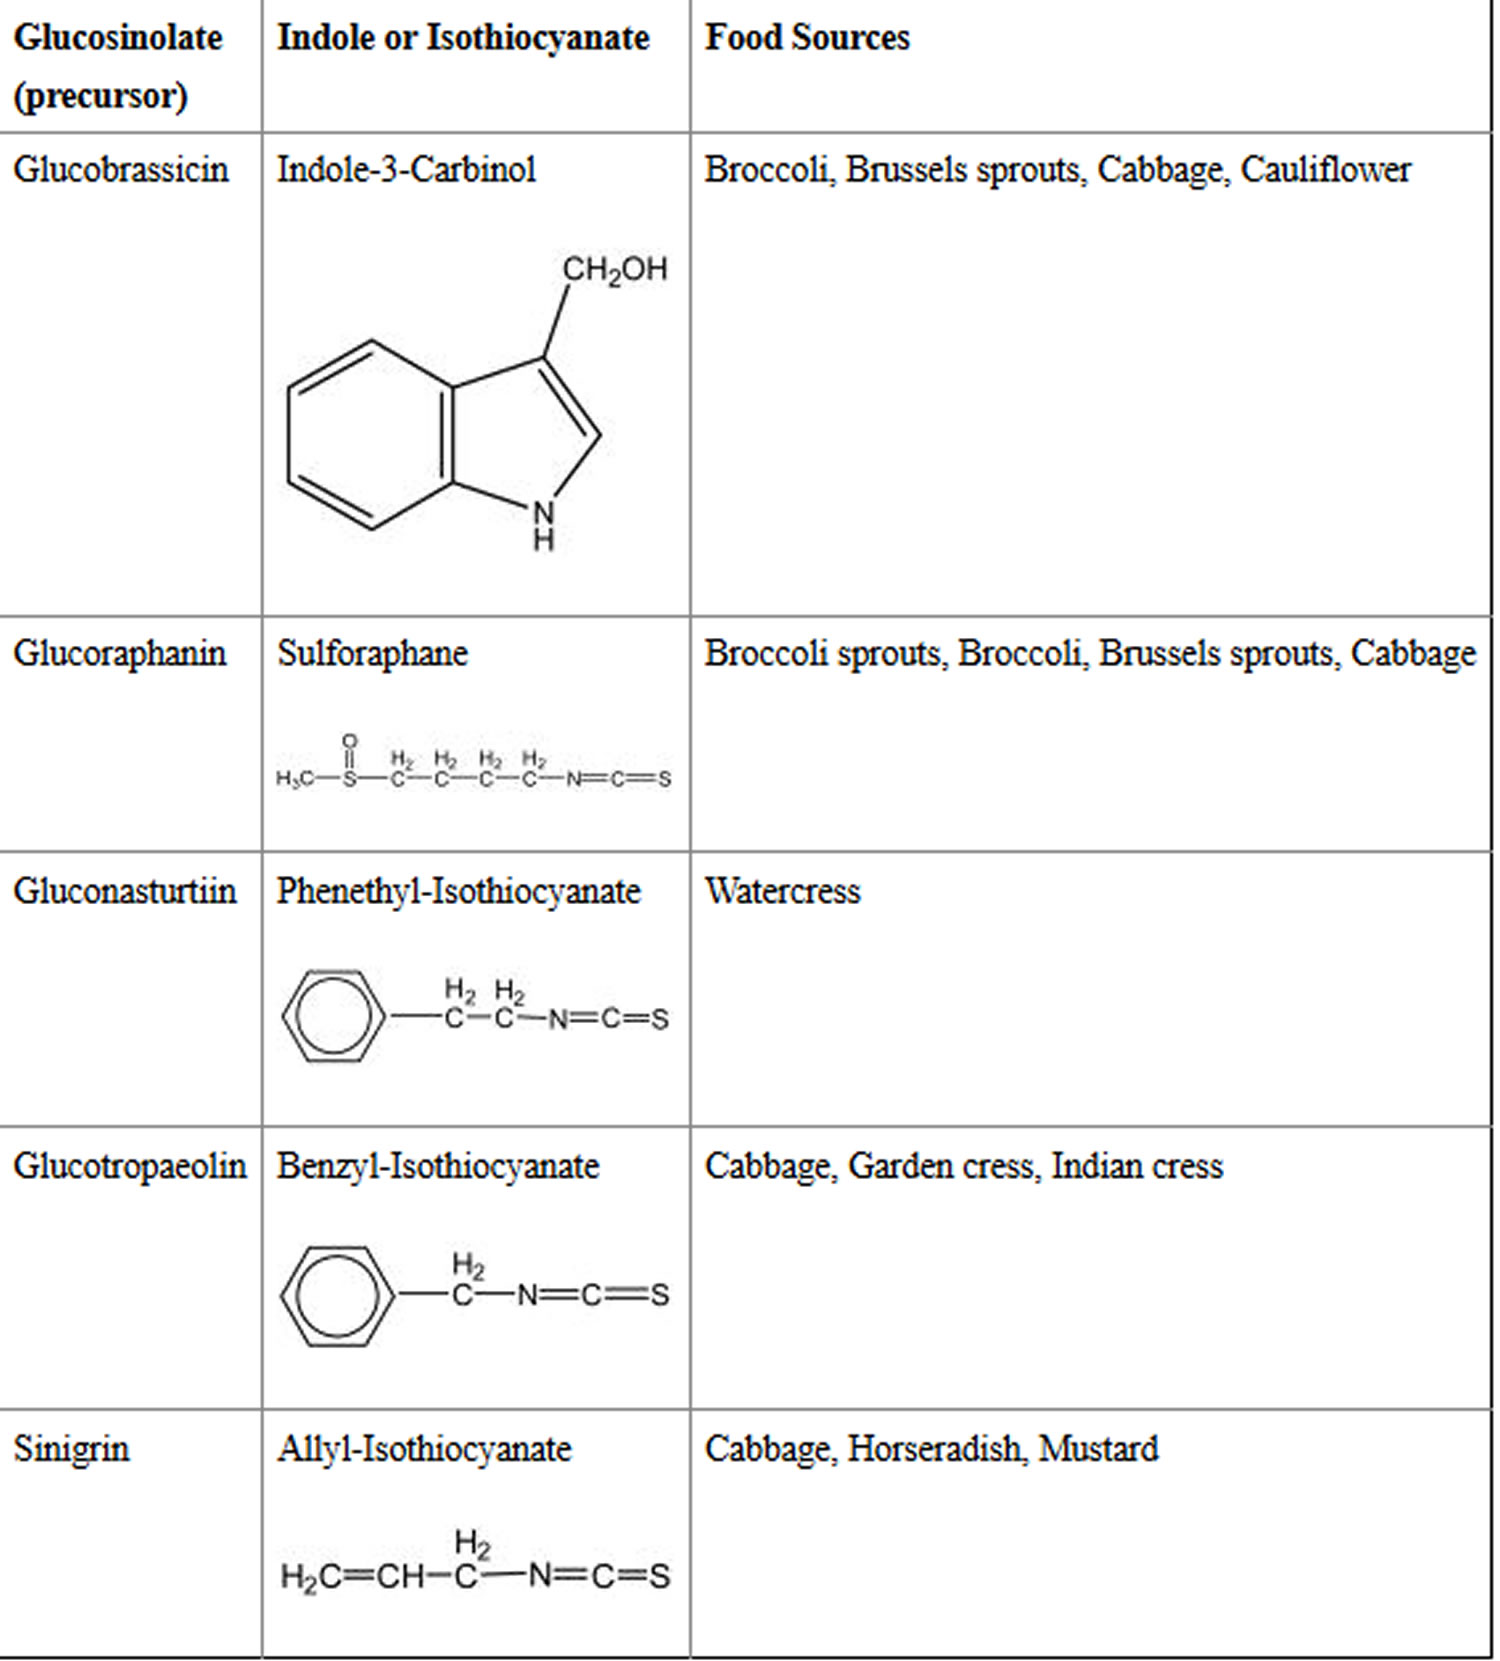 food sources of selected isothiocyanates and their glucosinolate precursors